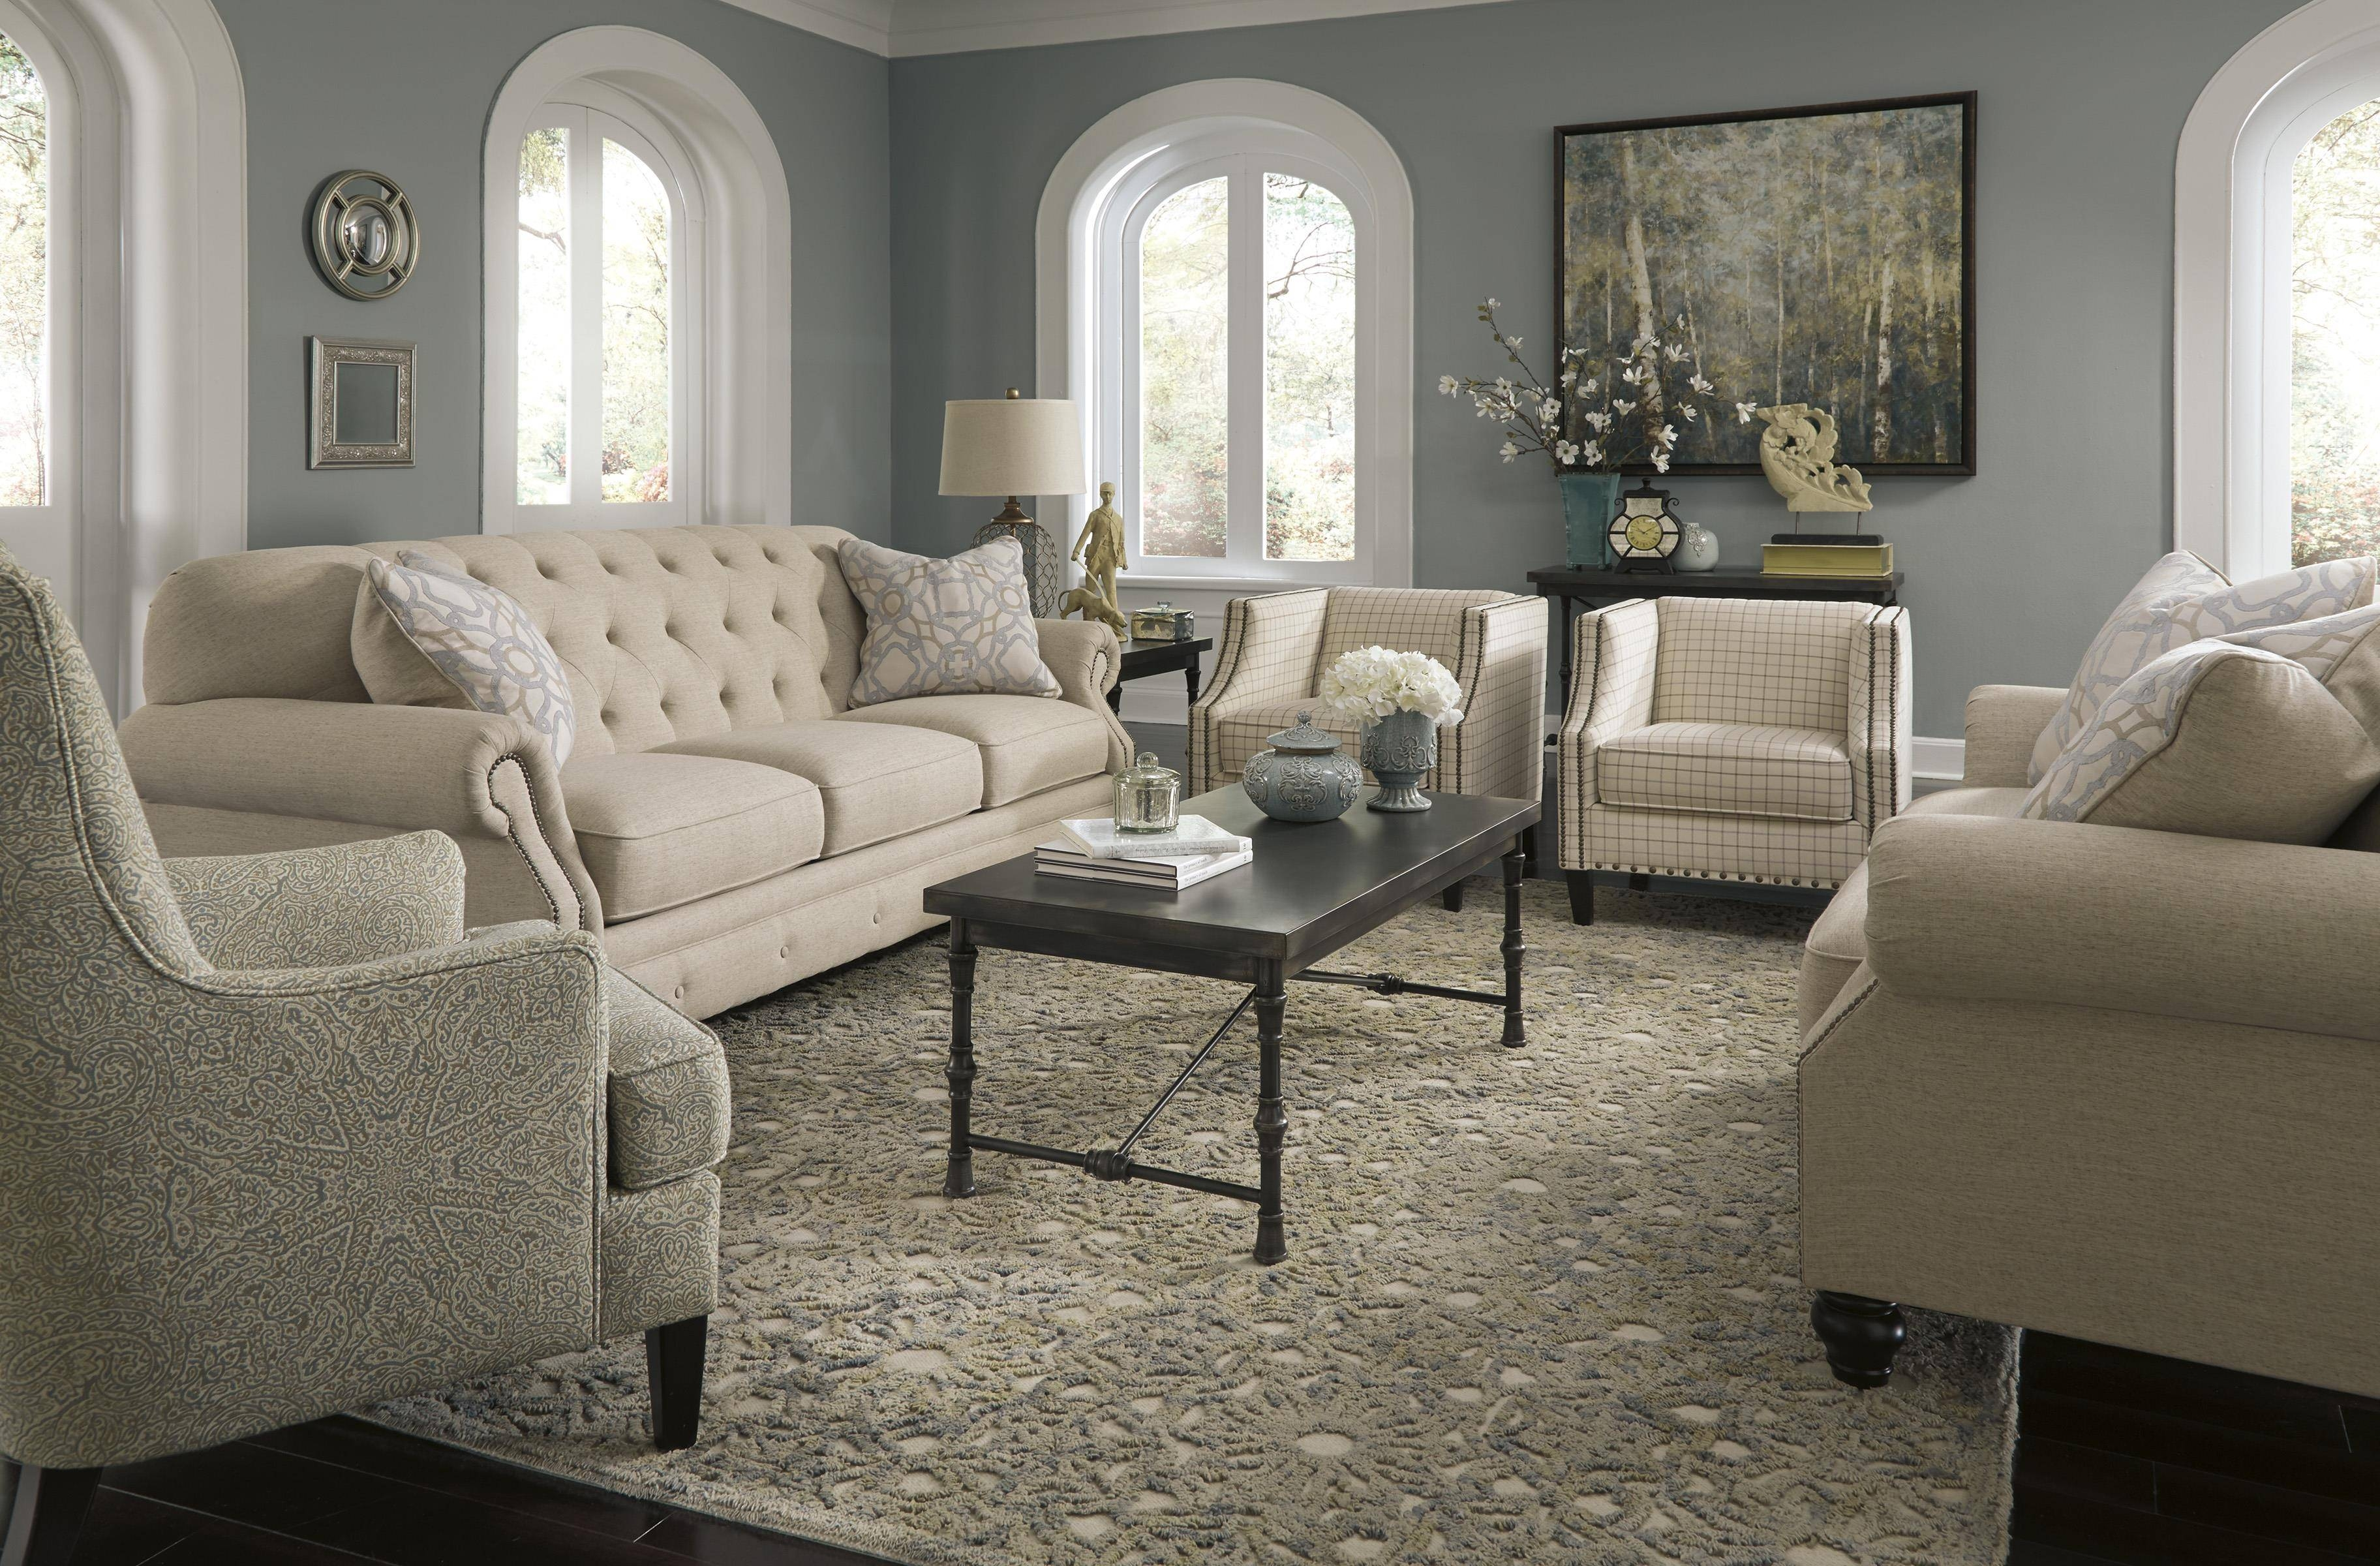 Signature Designashley Kieran Traditional Sofa With Tufted Throughout Ashley Tufted Sofa (View 4 of 30)